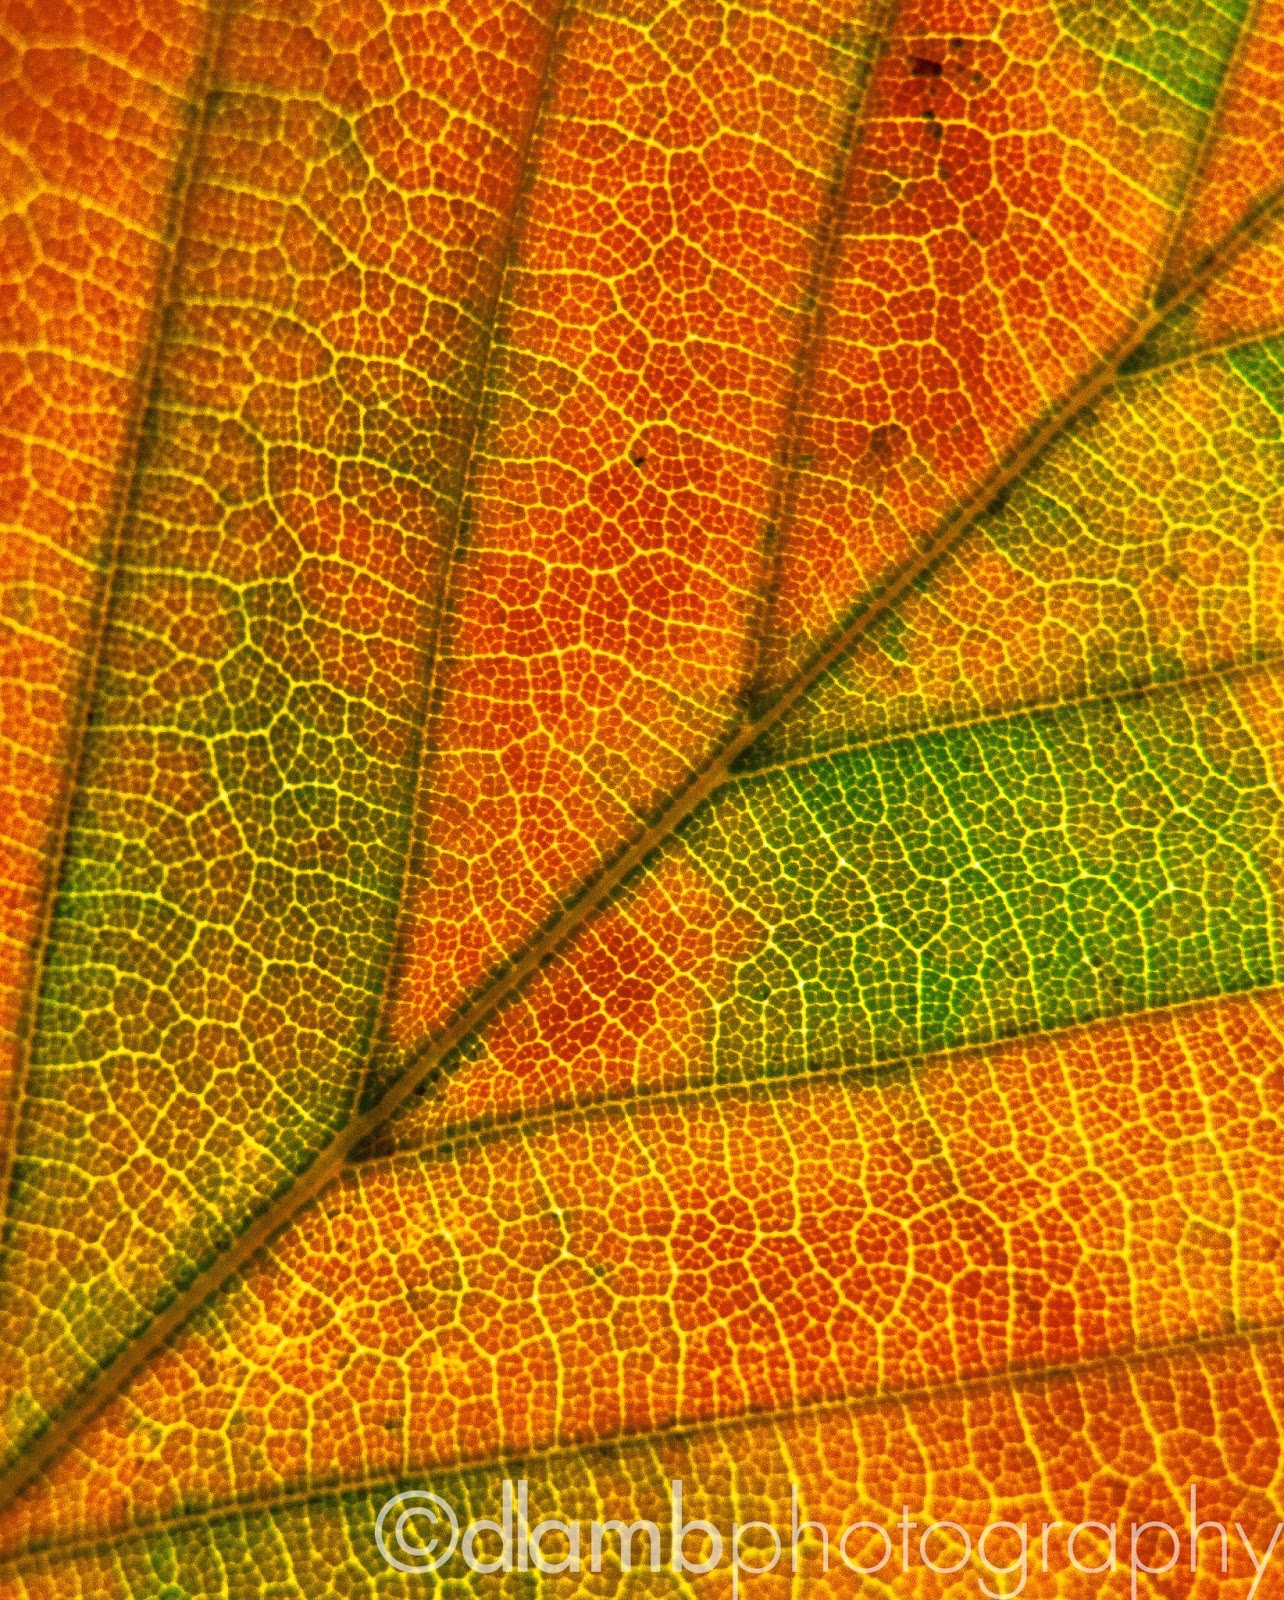 http://david-lamb.artistwebsites.com/featured/autumn-foliage-macro-3-david-lamb.html